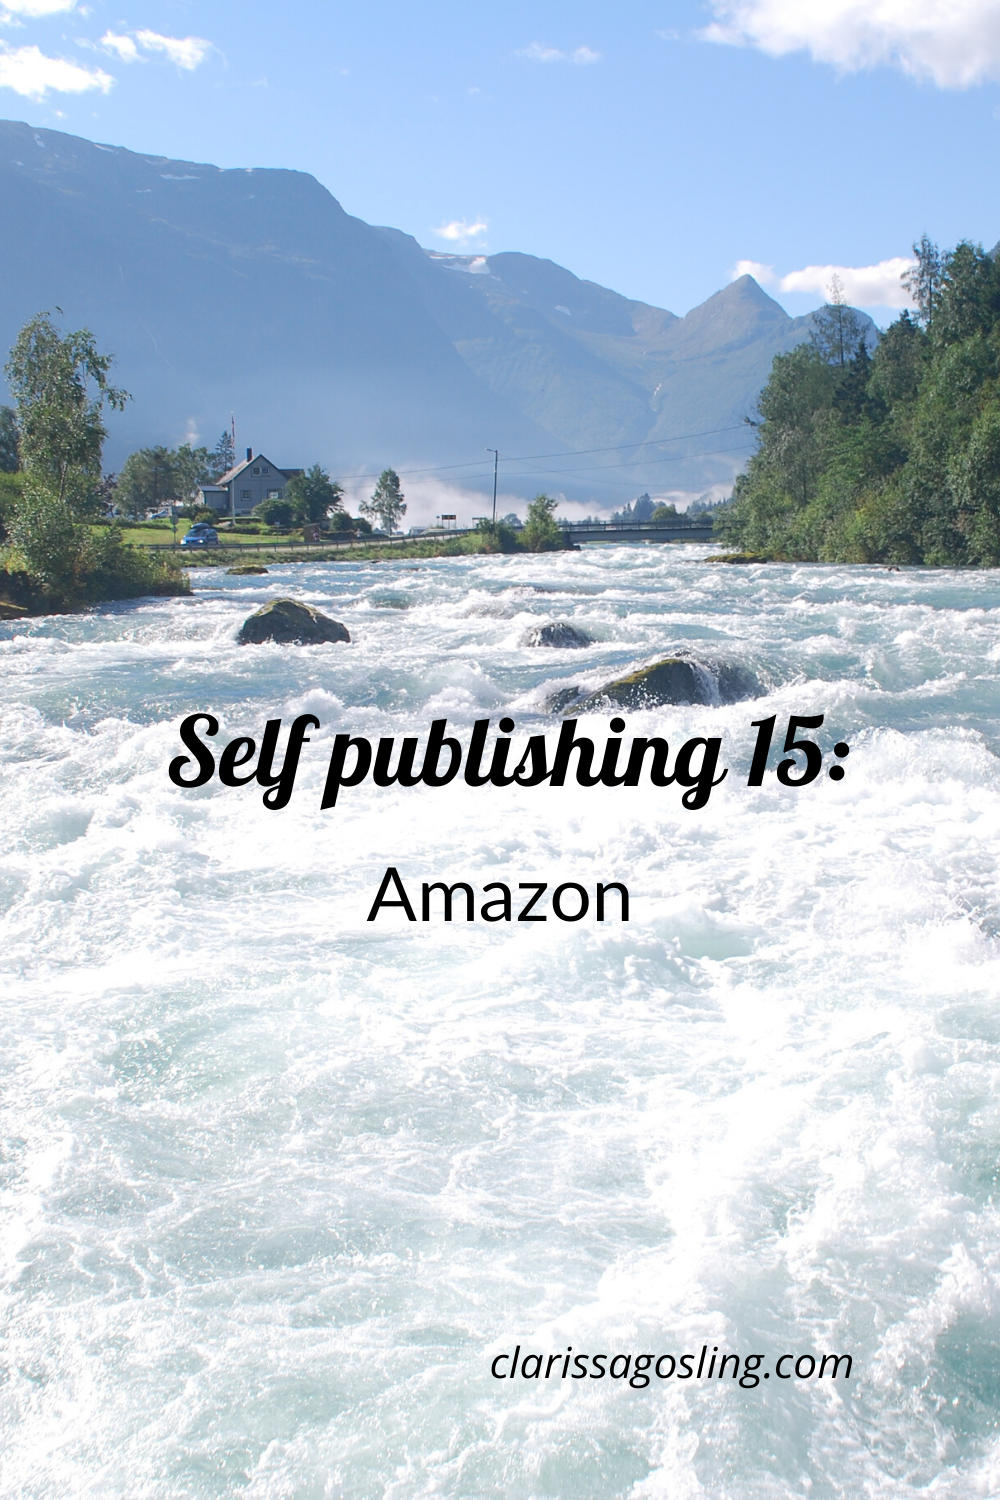 Self-publishing 15: Amazon